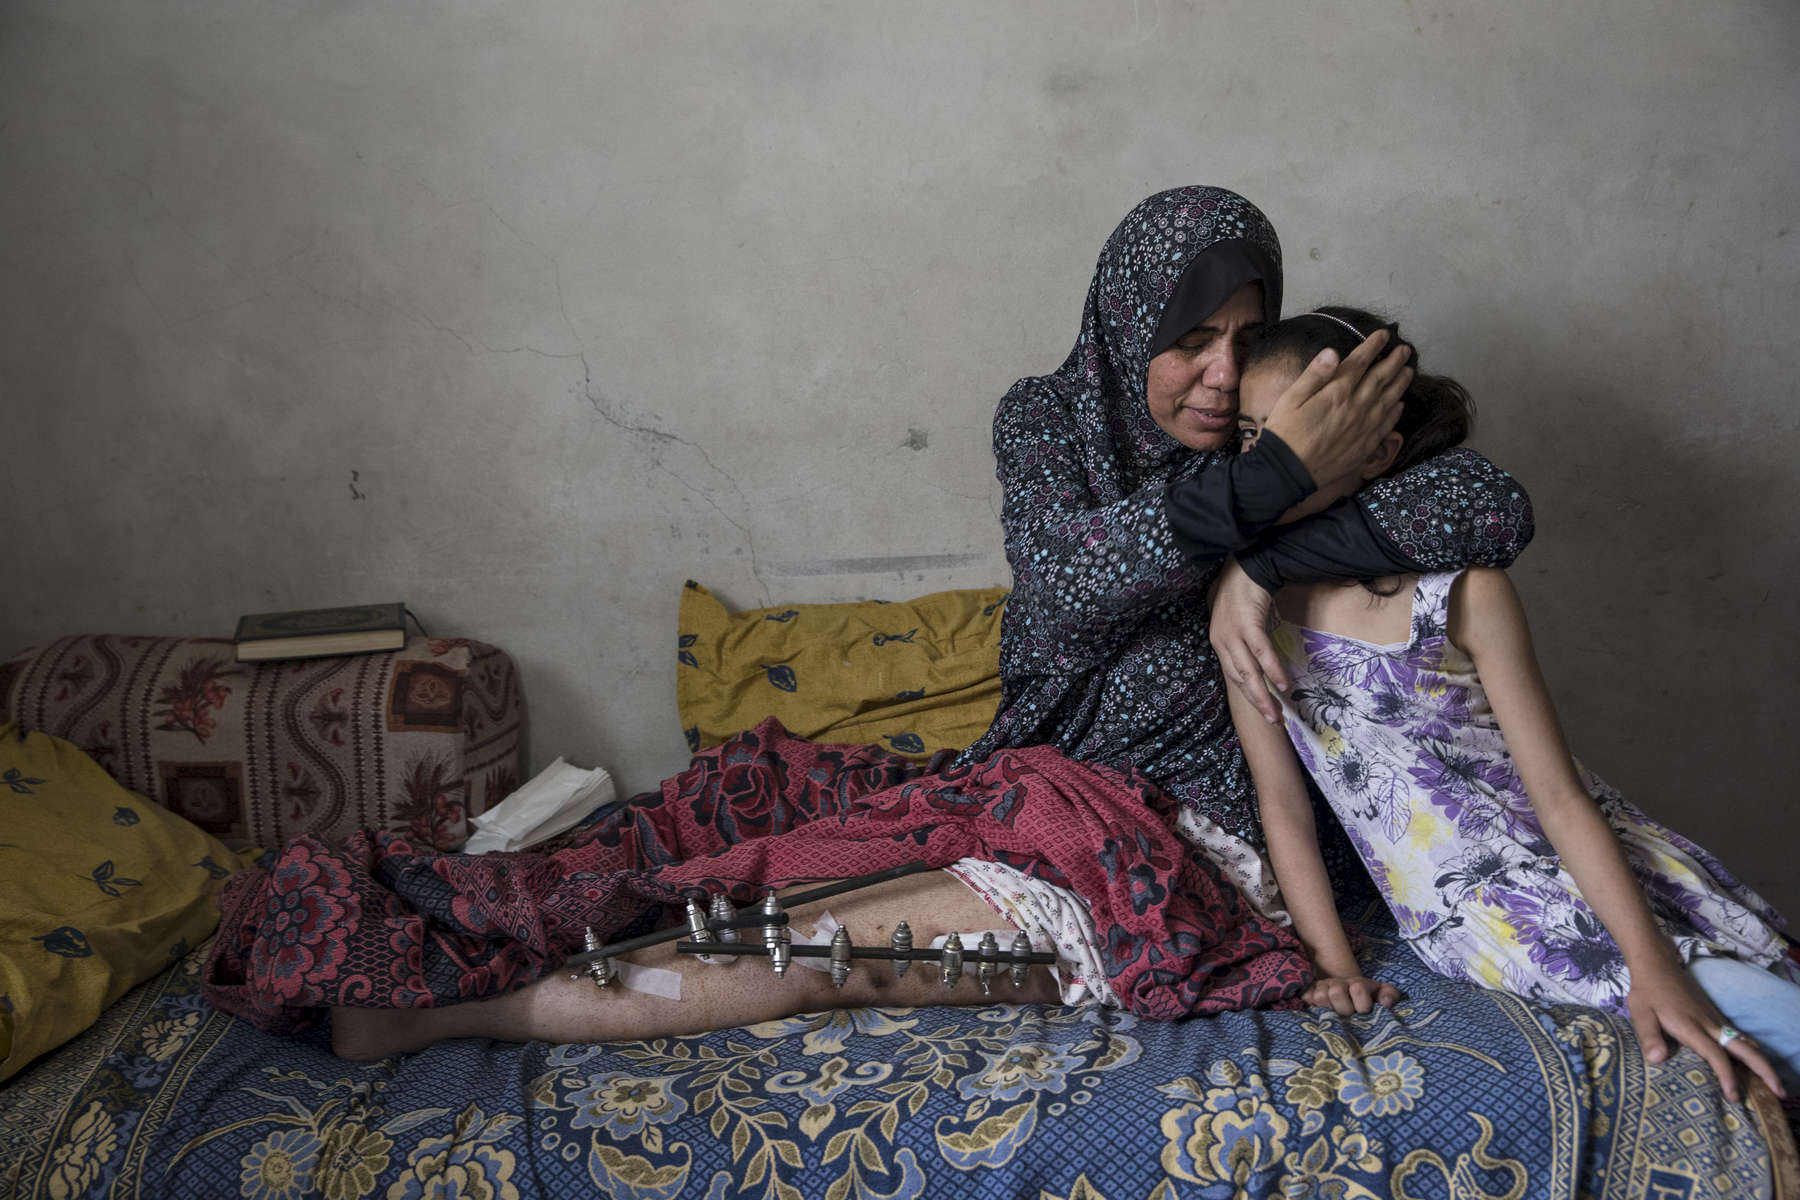 GAZA STRIP- MAY 22,2018 : Kefah Al-Ajrami, 47, holds her daughter Zamzam Al-Ajrami, 9 years  who was crying after seeing her mother in pain on May 22,2018 in Gaza city, Gaza strip. Kefah is a mother of seven, she was shot in her left leg with an exploding bullet causing extensive injury to her leg. She went to the protests on March 30th  along with her children and husband but was nowhere near fence. The Israeli military (IDF) started using new weaponry, explosive bullets that shatter bones, tissue, destroying veins and arteries, the aim is to create a handicapped community, especially amongst the young male population.  Everyone is well aware that Gaza's two million inhabitants are trapped in a cycle of violence and poverty, created by policies and political decisions on both sides. The problems and complications affecting Gaza today are overwhelming. The world, seemingly accustomed to the suffering of the Gazan people turns a blind eye. (Photo by Paula Bronstein )